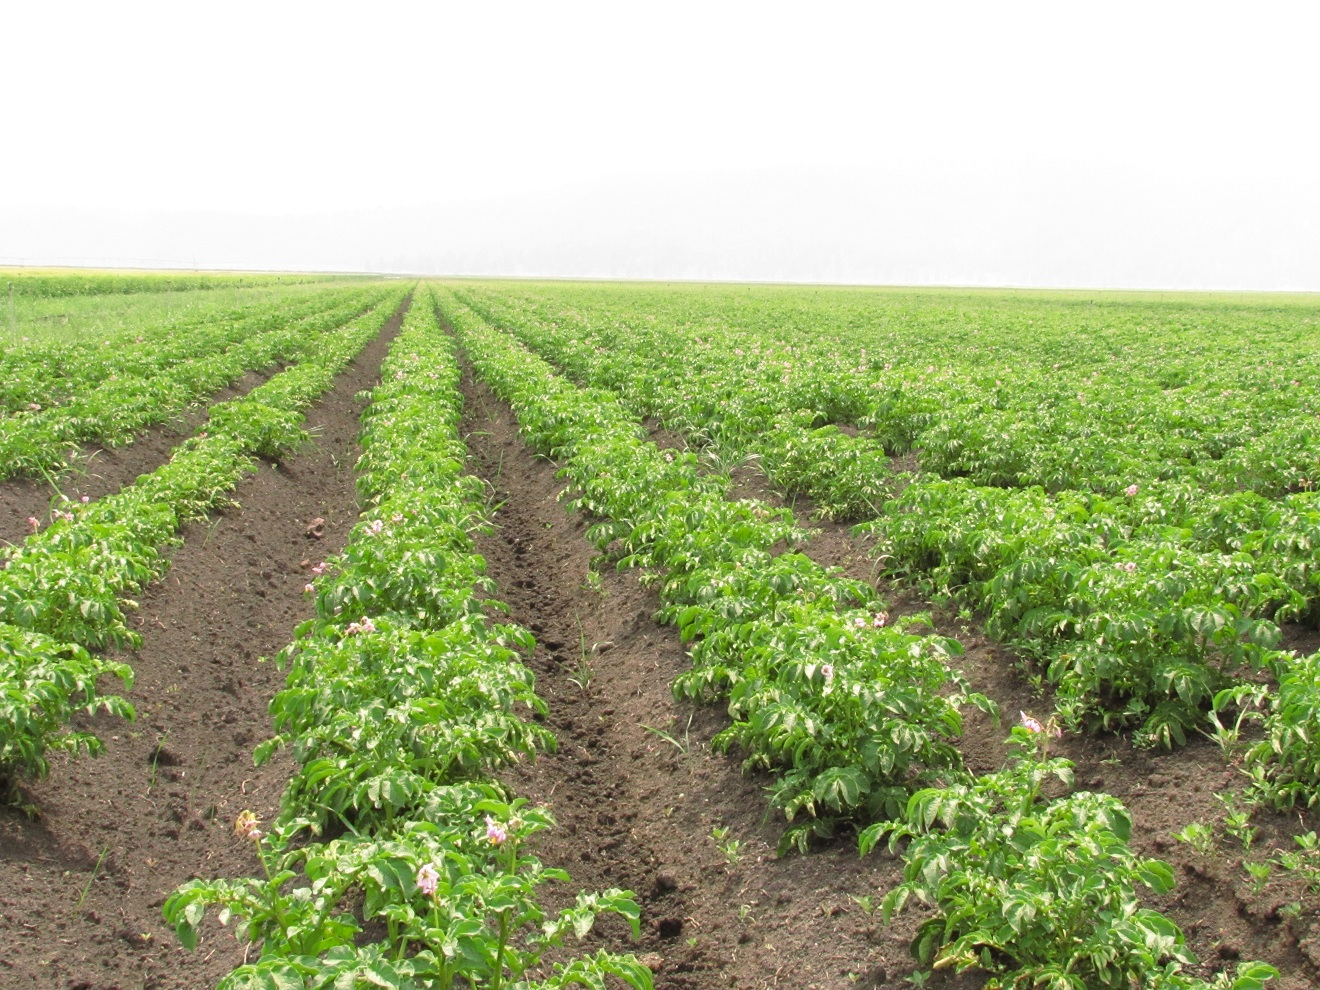 A field of organic potatoes growing on the Running Y Ranch near Klamath Falls, OR.